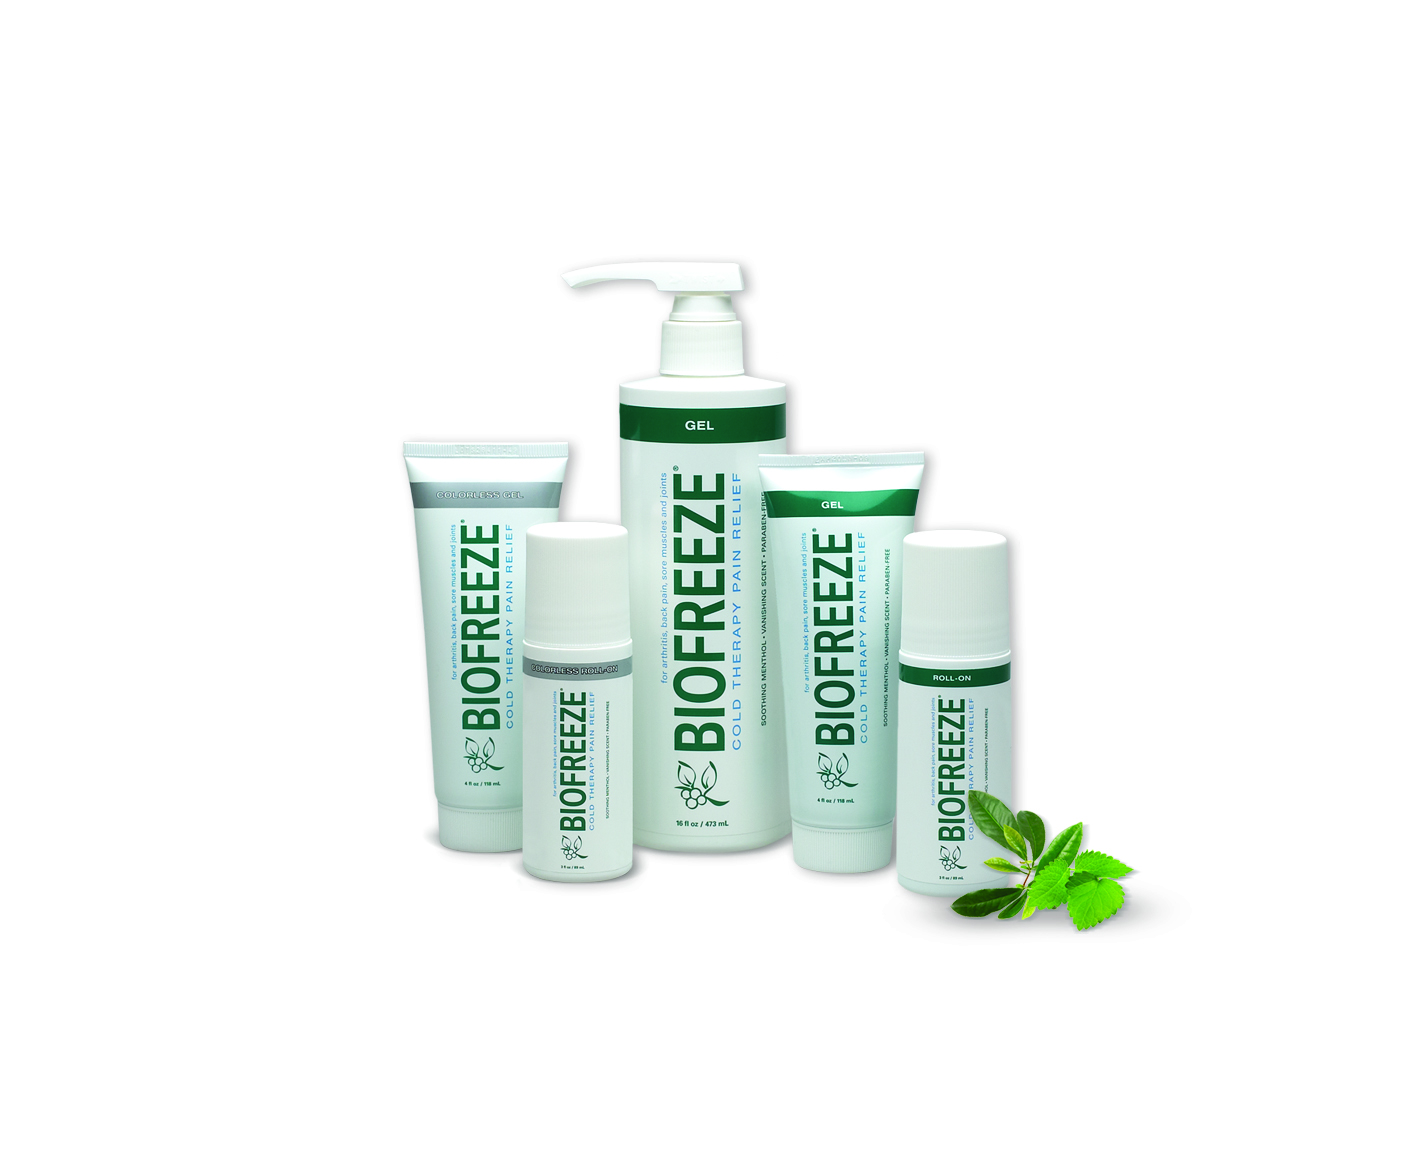 Performance Health Introduces New, Improved Biofreeze Pain Reliever, MASSAGE Magazine